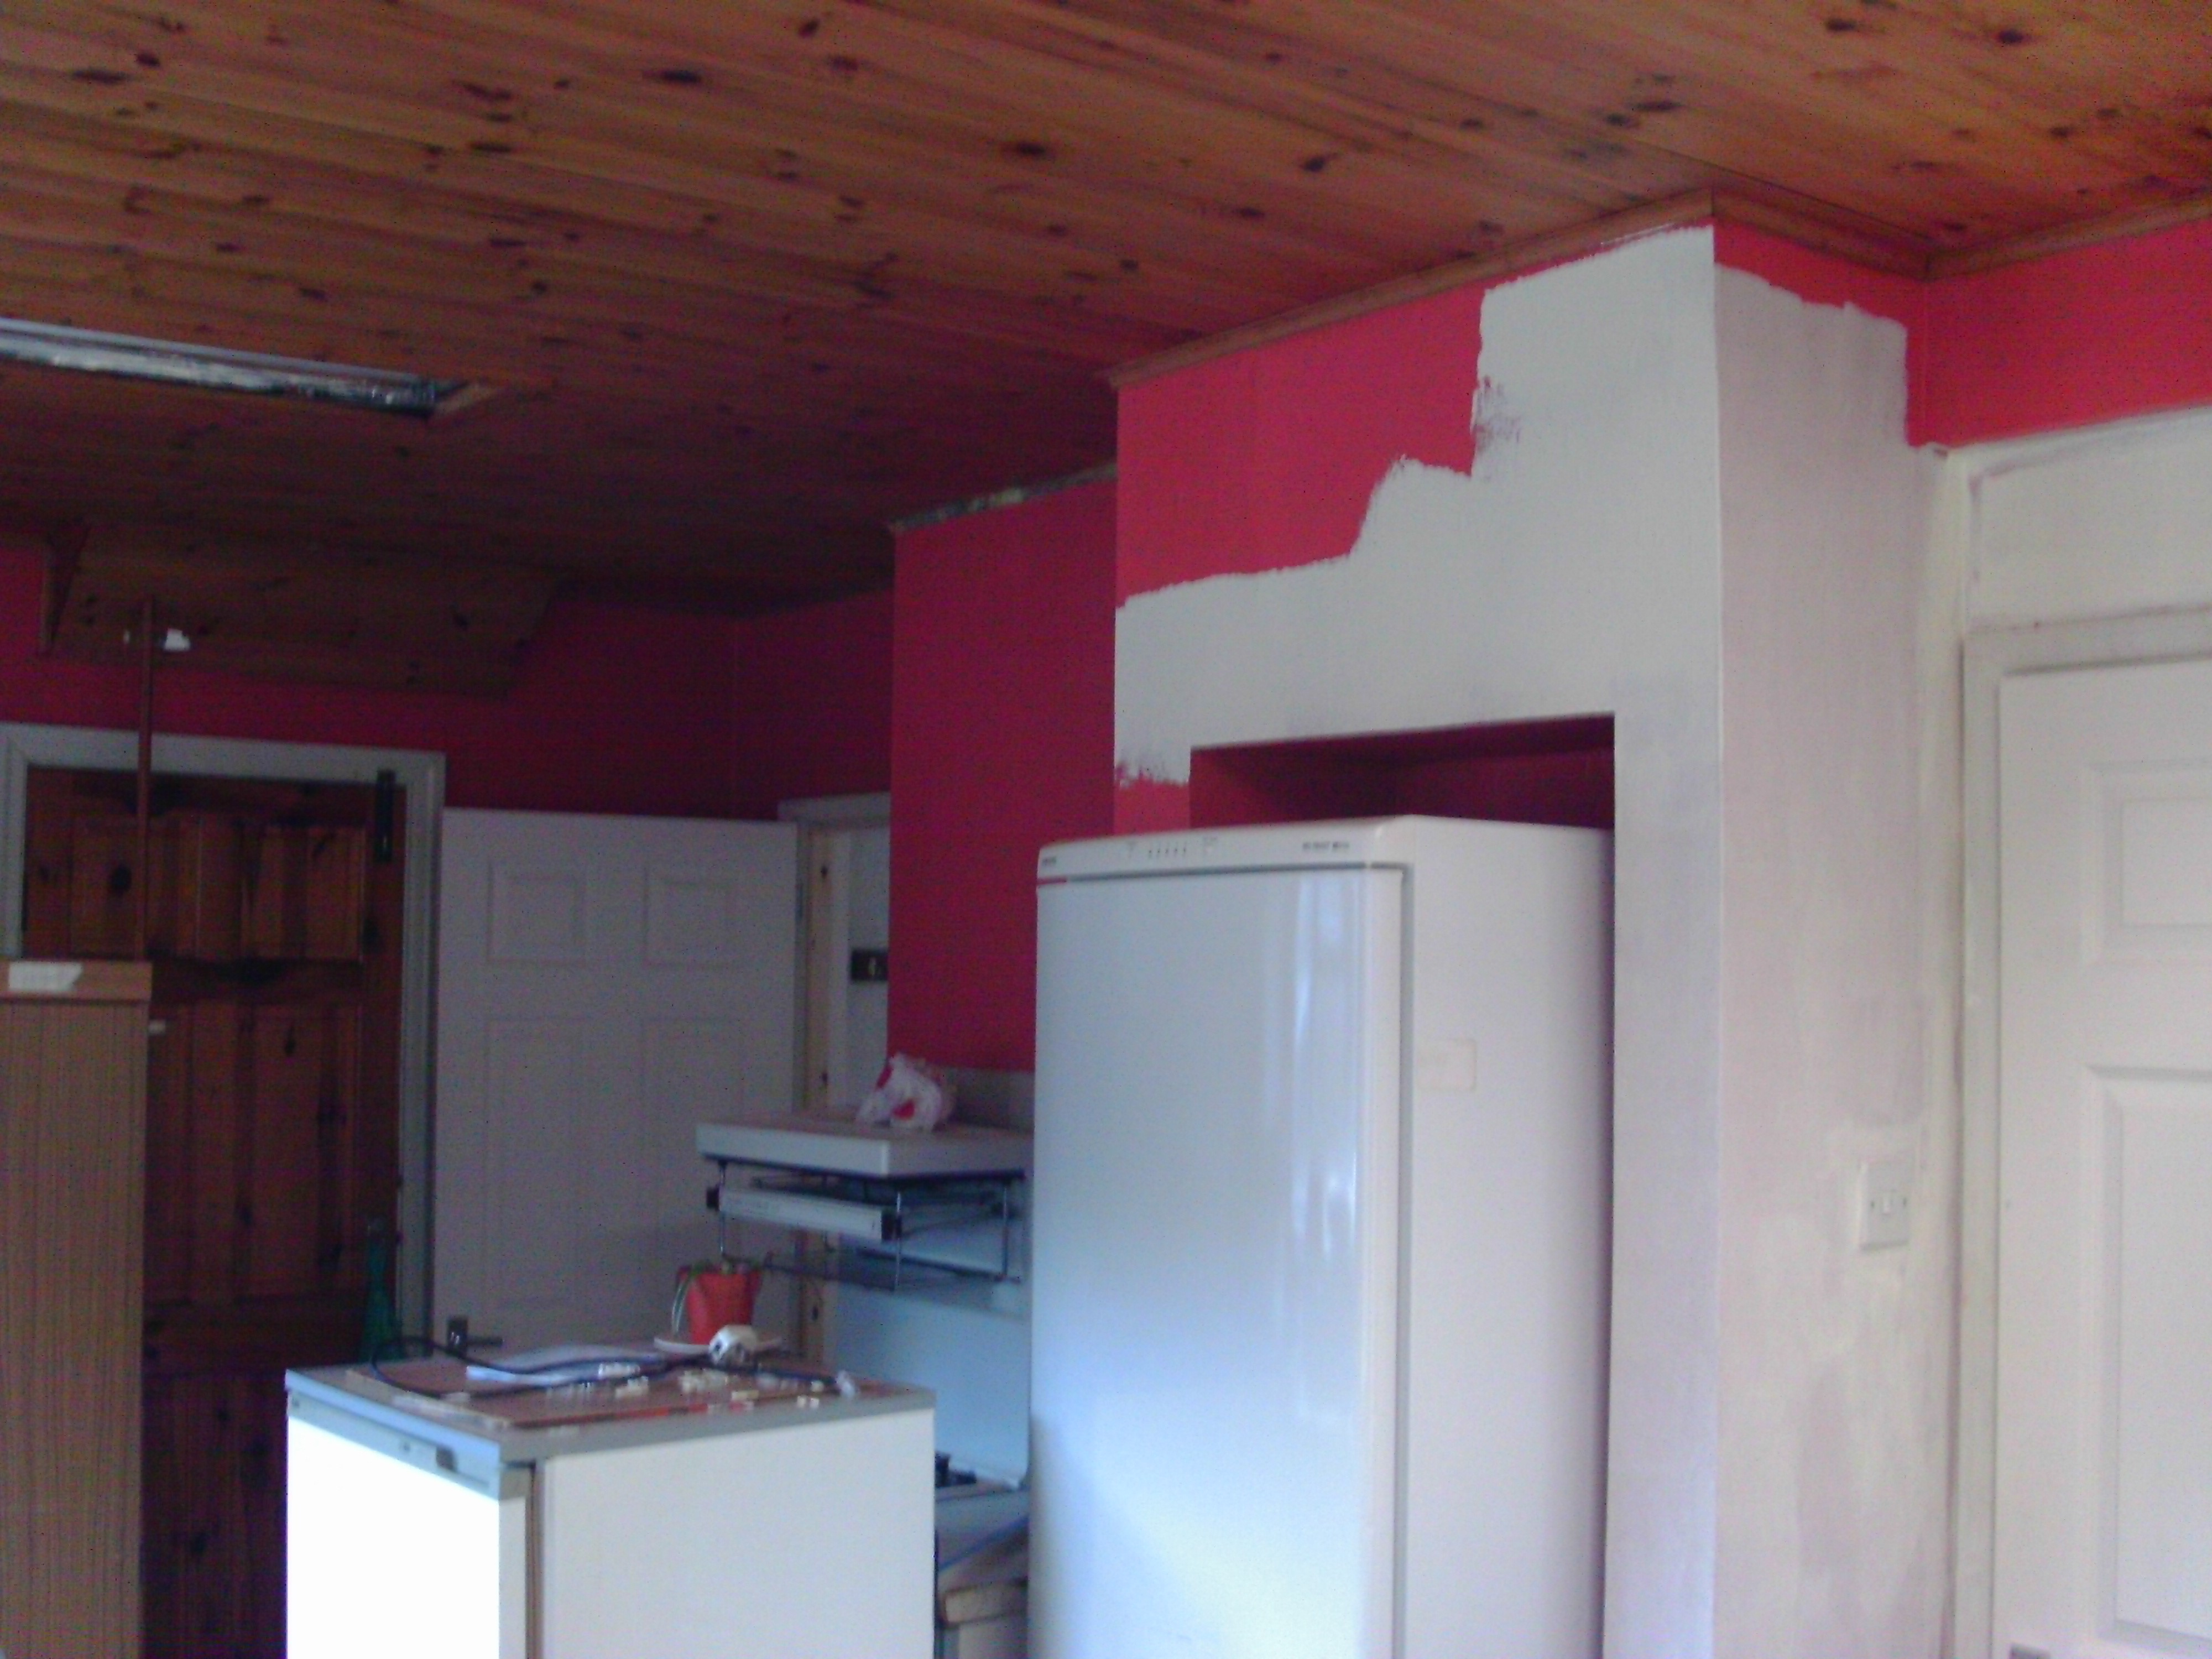 Painting underway - changing the colour in the kitchen from bright red to white